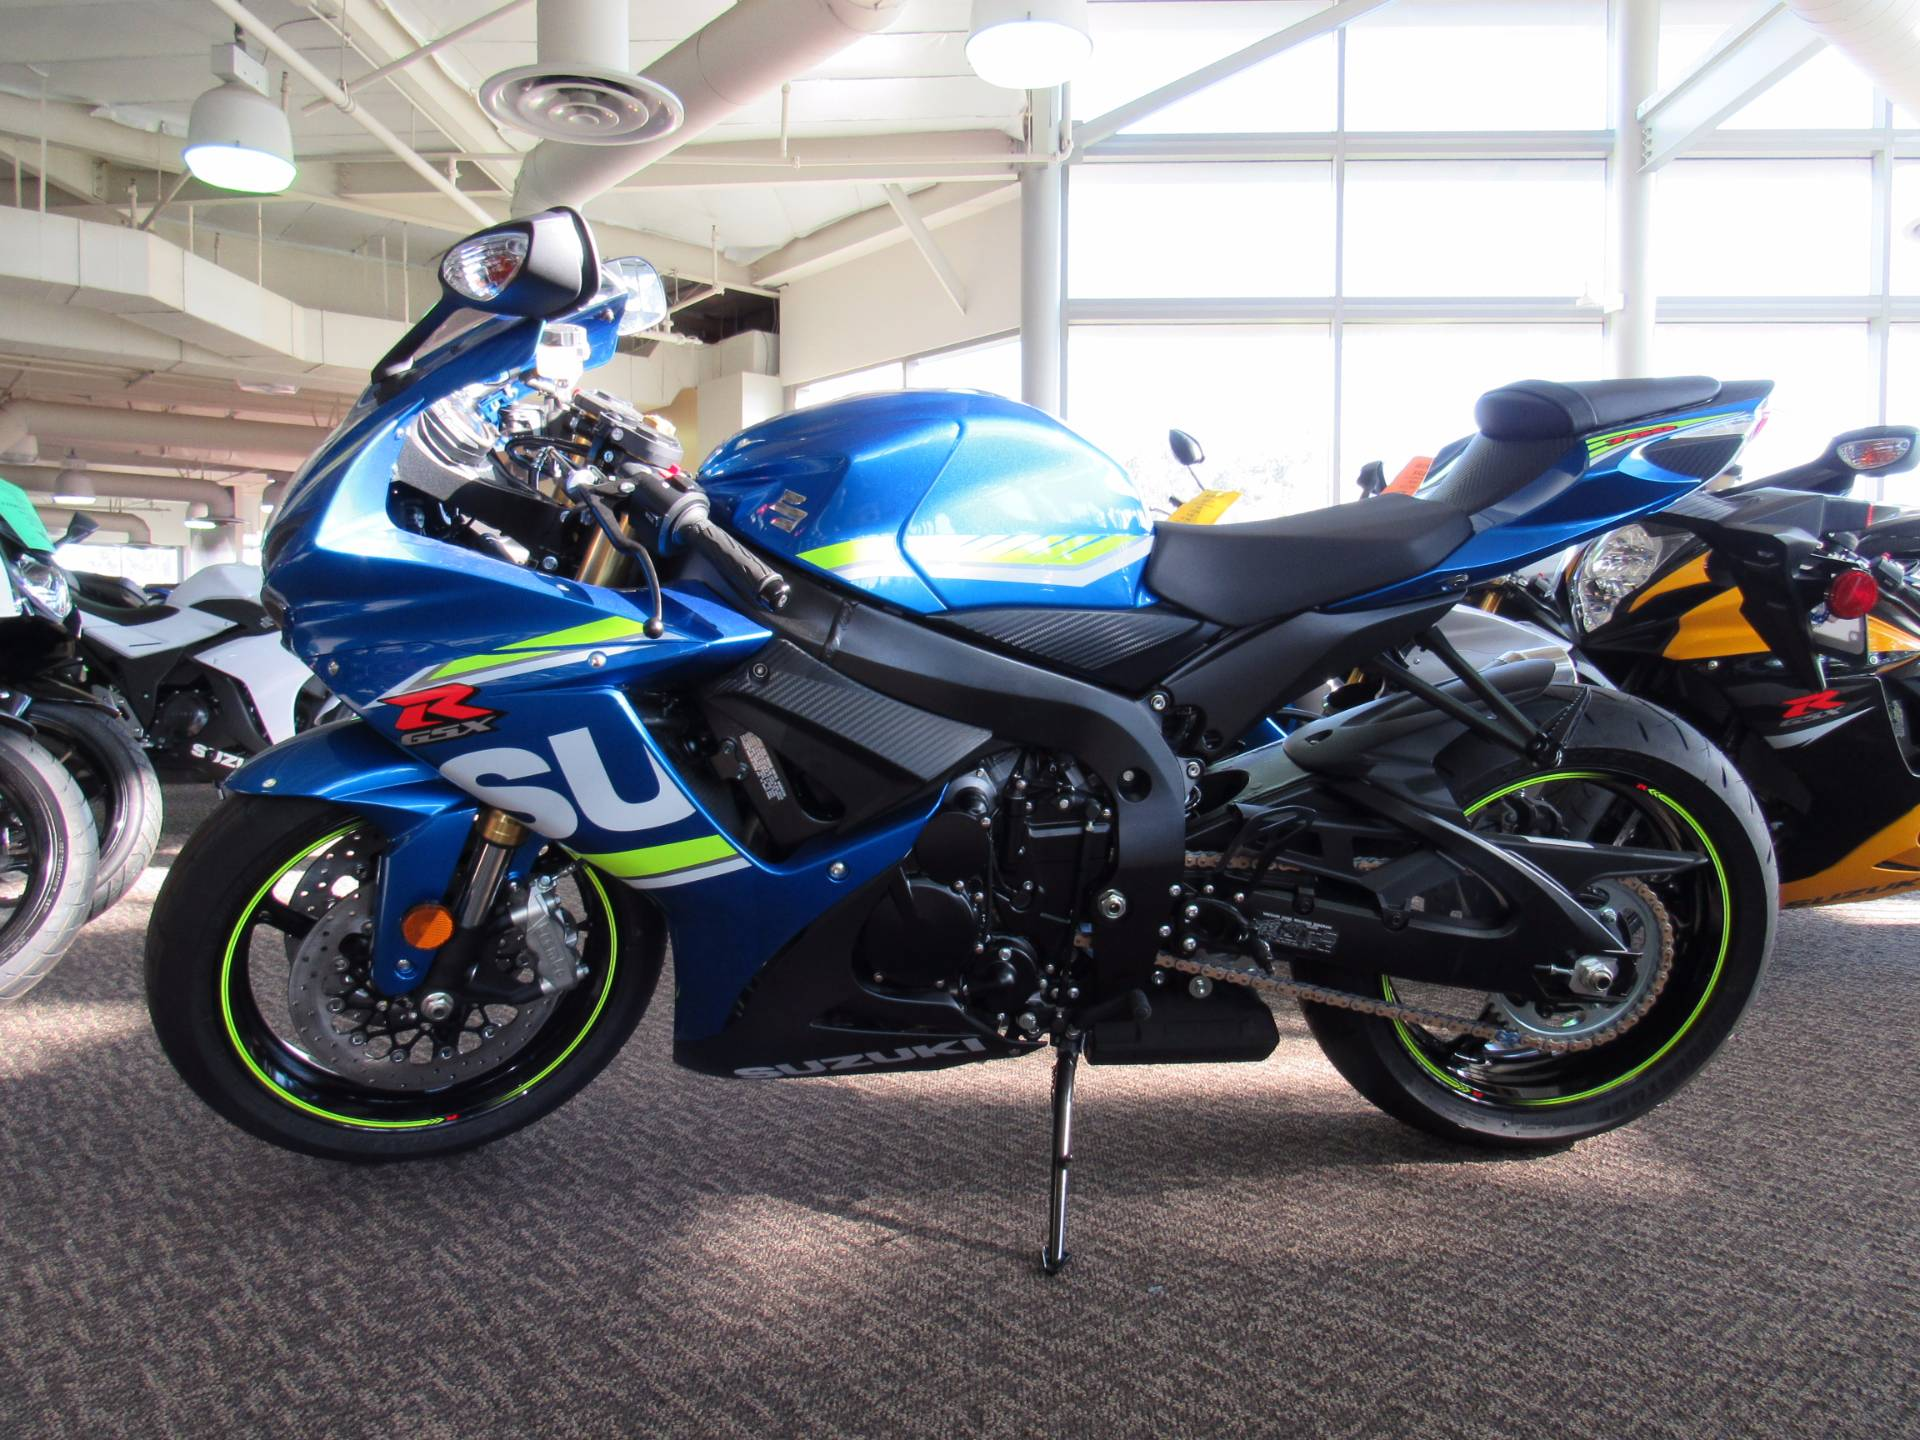 2017 Suzuki GSX-R750 in Irvine, California